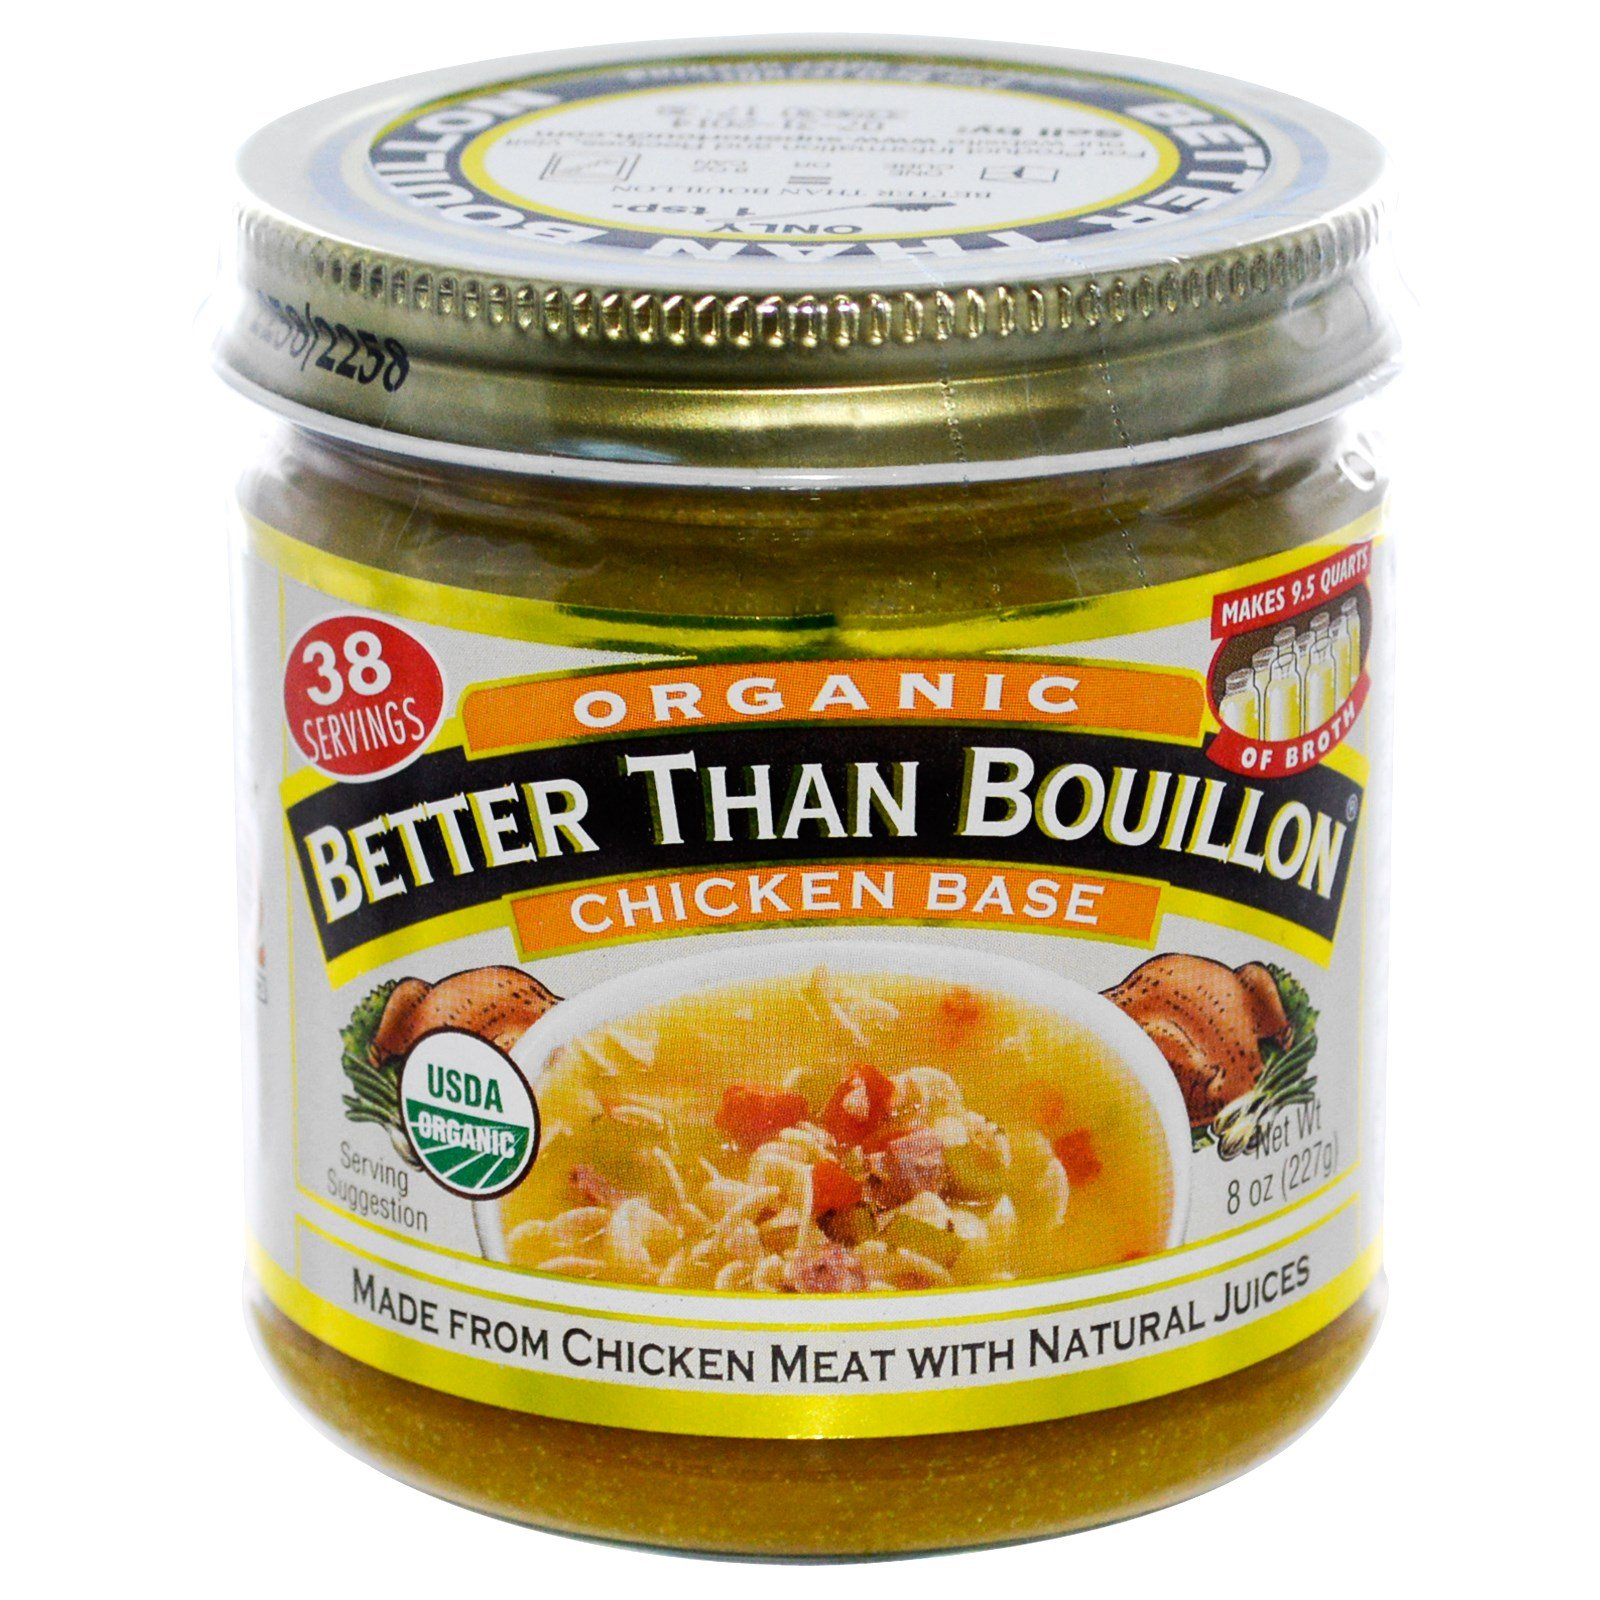 Better Than Bouillon, Organic, Chicken Base, 8 oz (227 g) - 2PC